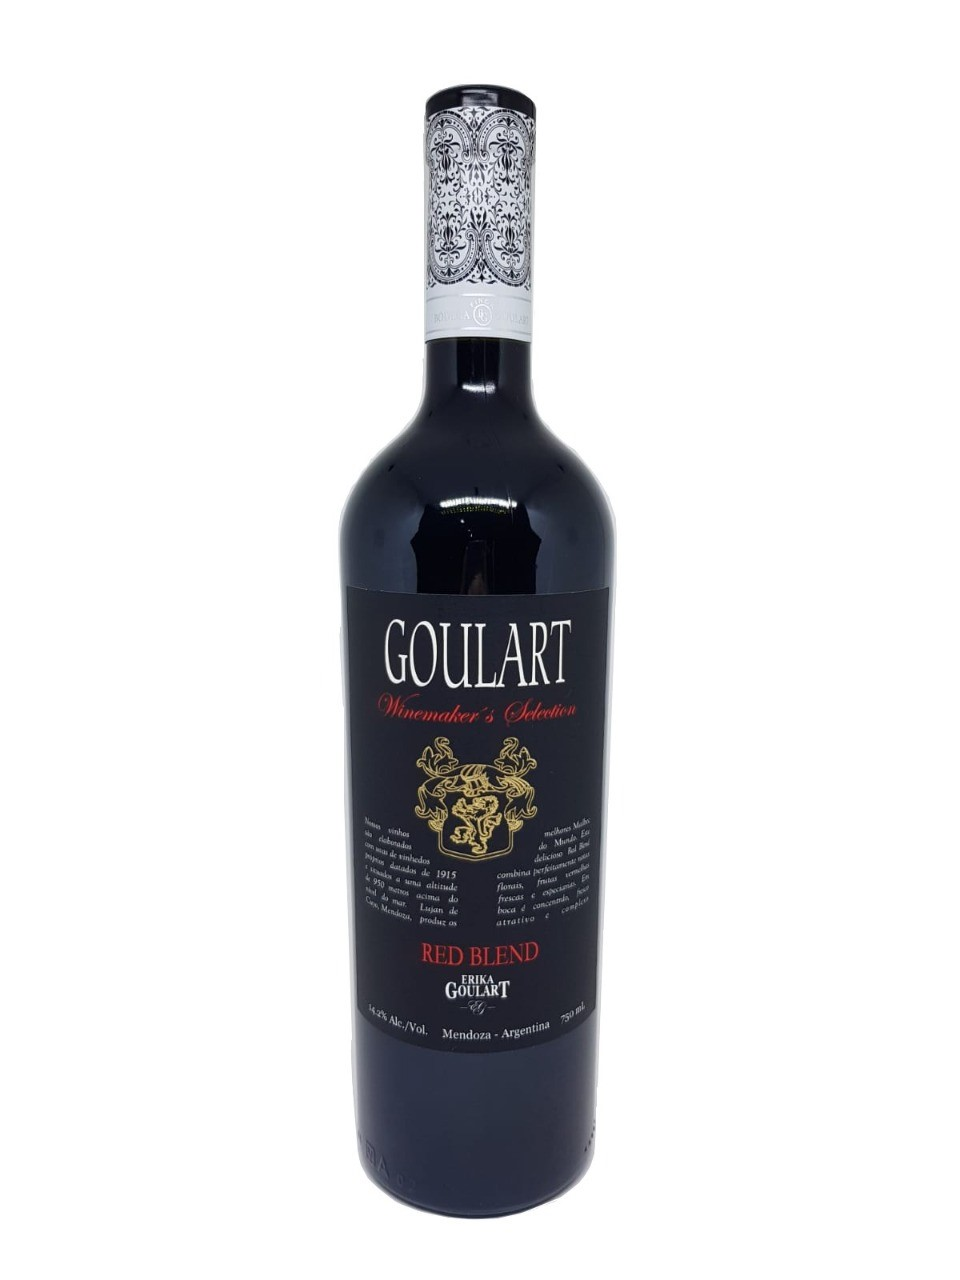 Goulart Winemakers Selection Red Blend 2020